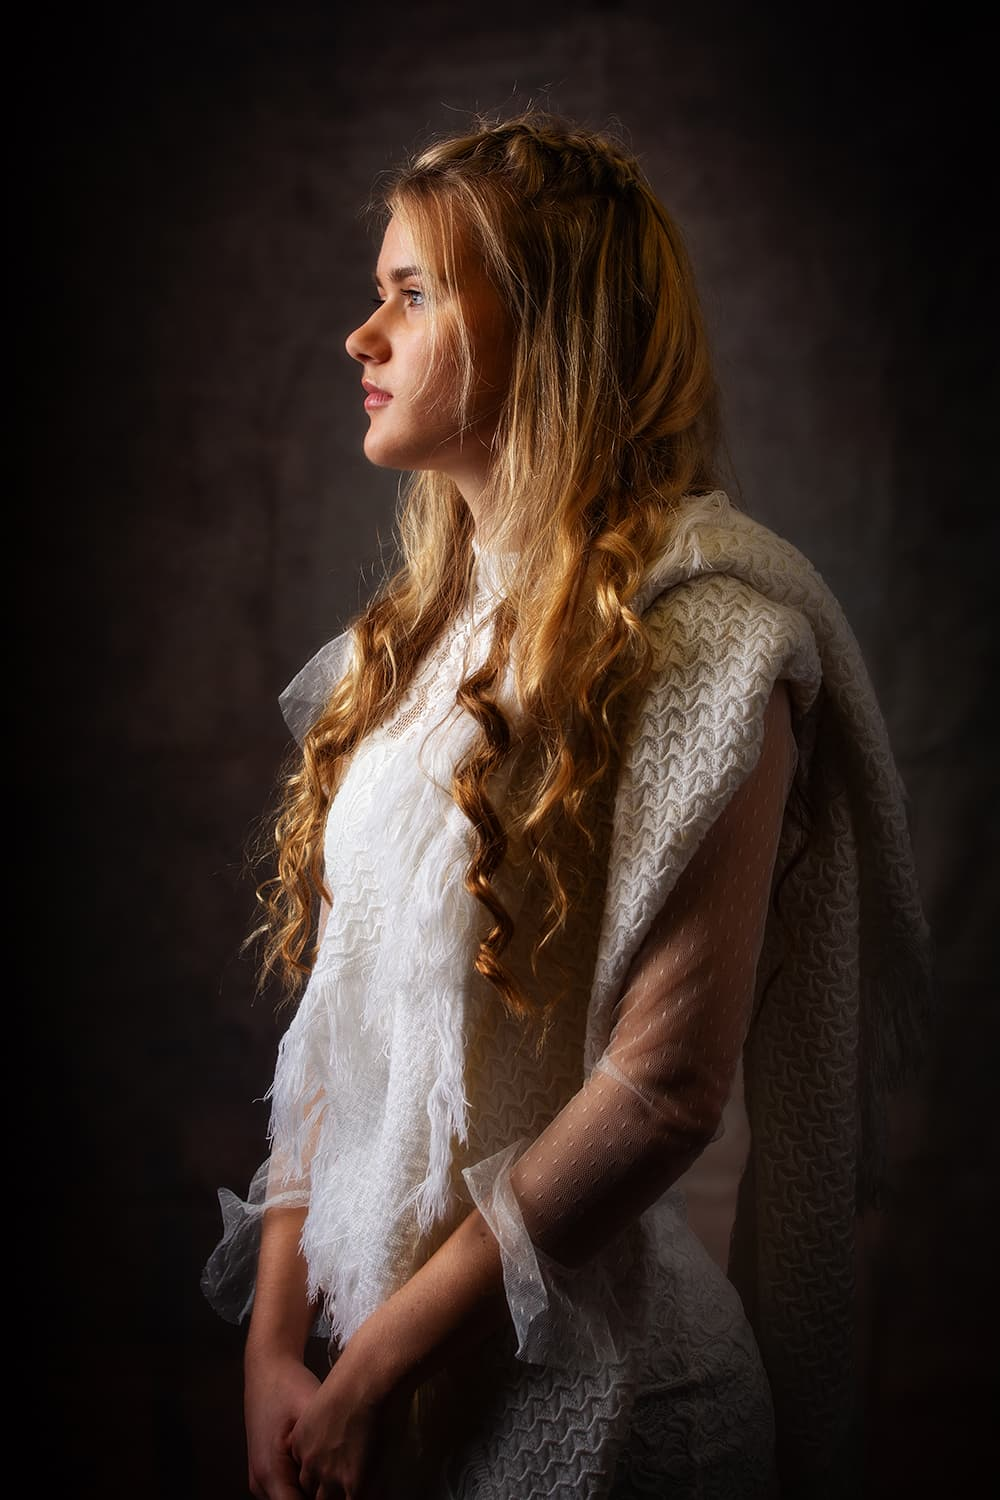 Low lit portrait of a teen profile wearing a white dress witha woollen throw over her shoulder.